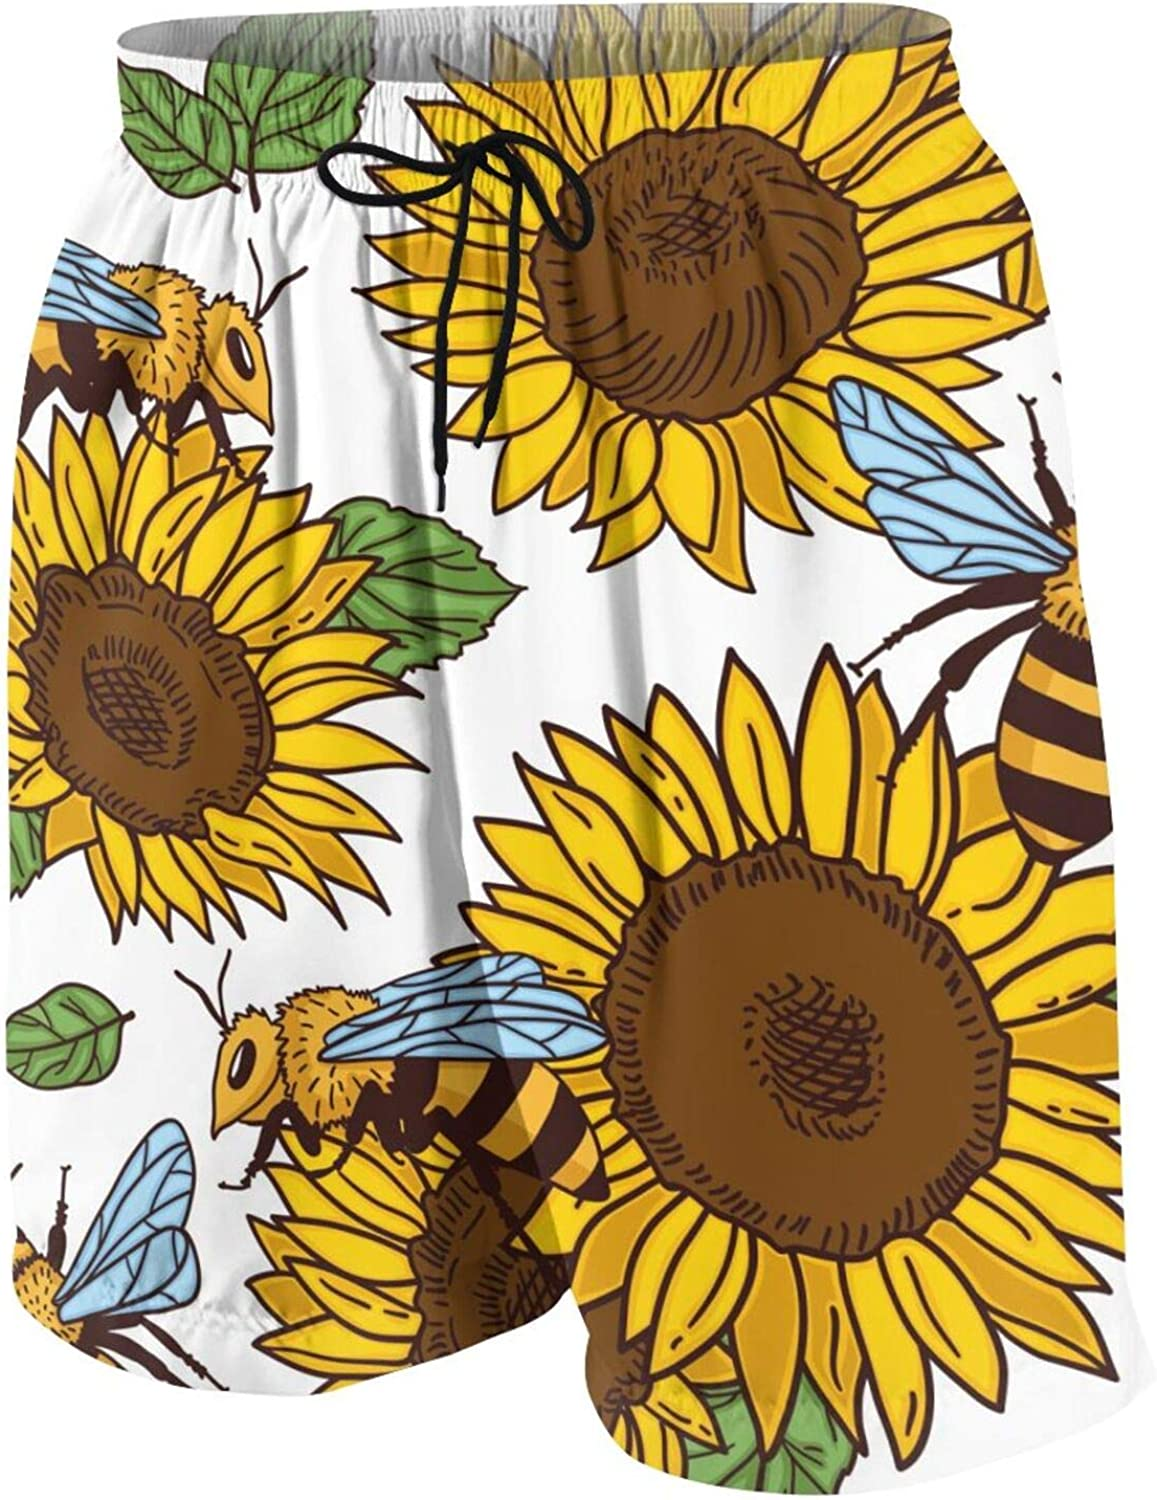 FuYin Bees Leaves and Sunflowers Boys Swim Trunks Quick Dry Beach Board Swim Shorts Swimsuit Swimwear from 7T to 18